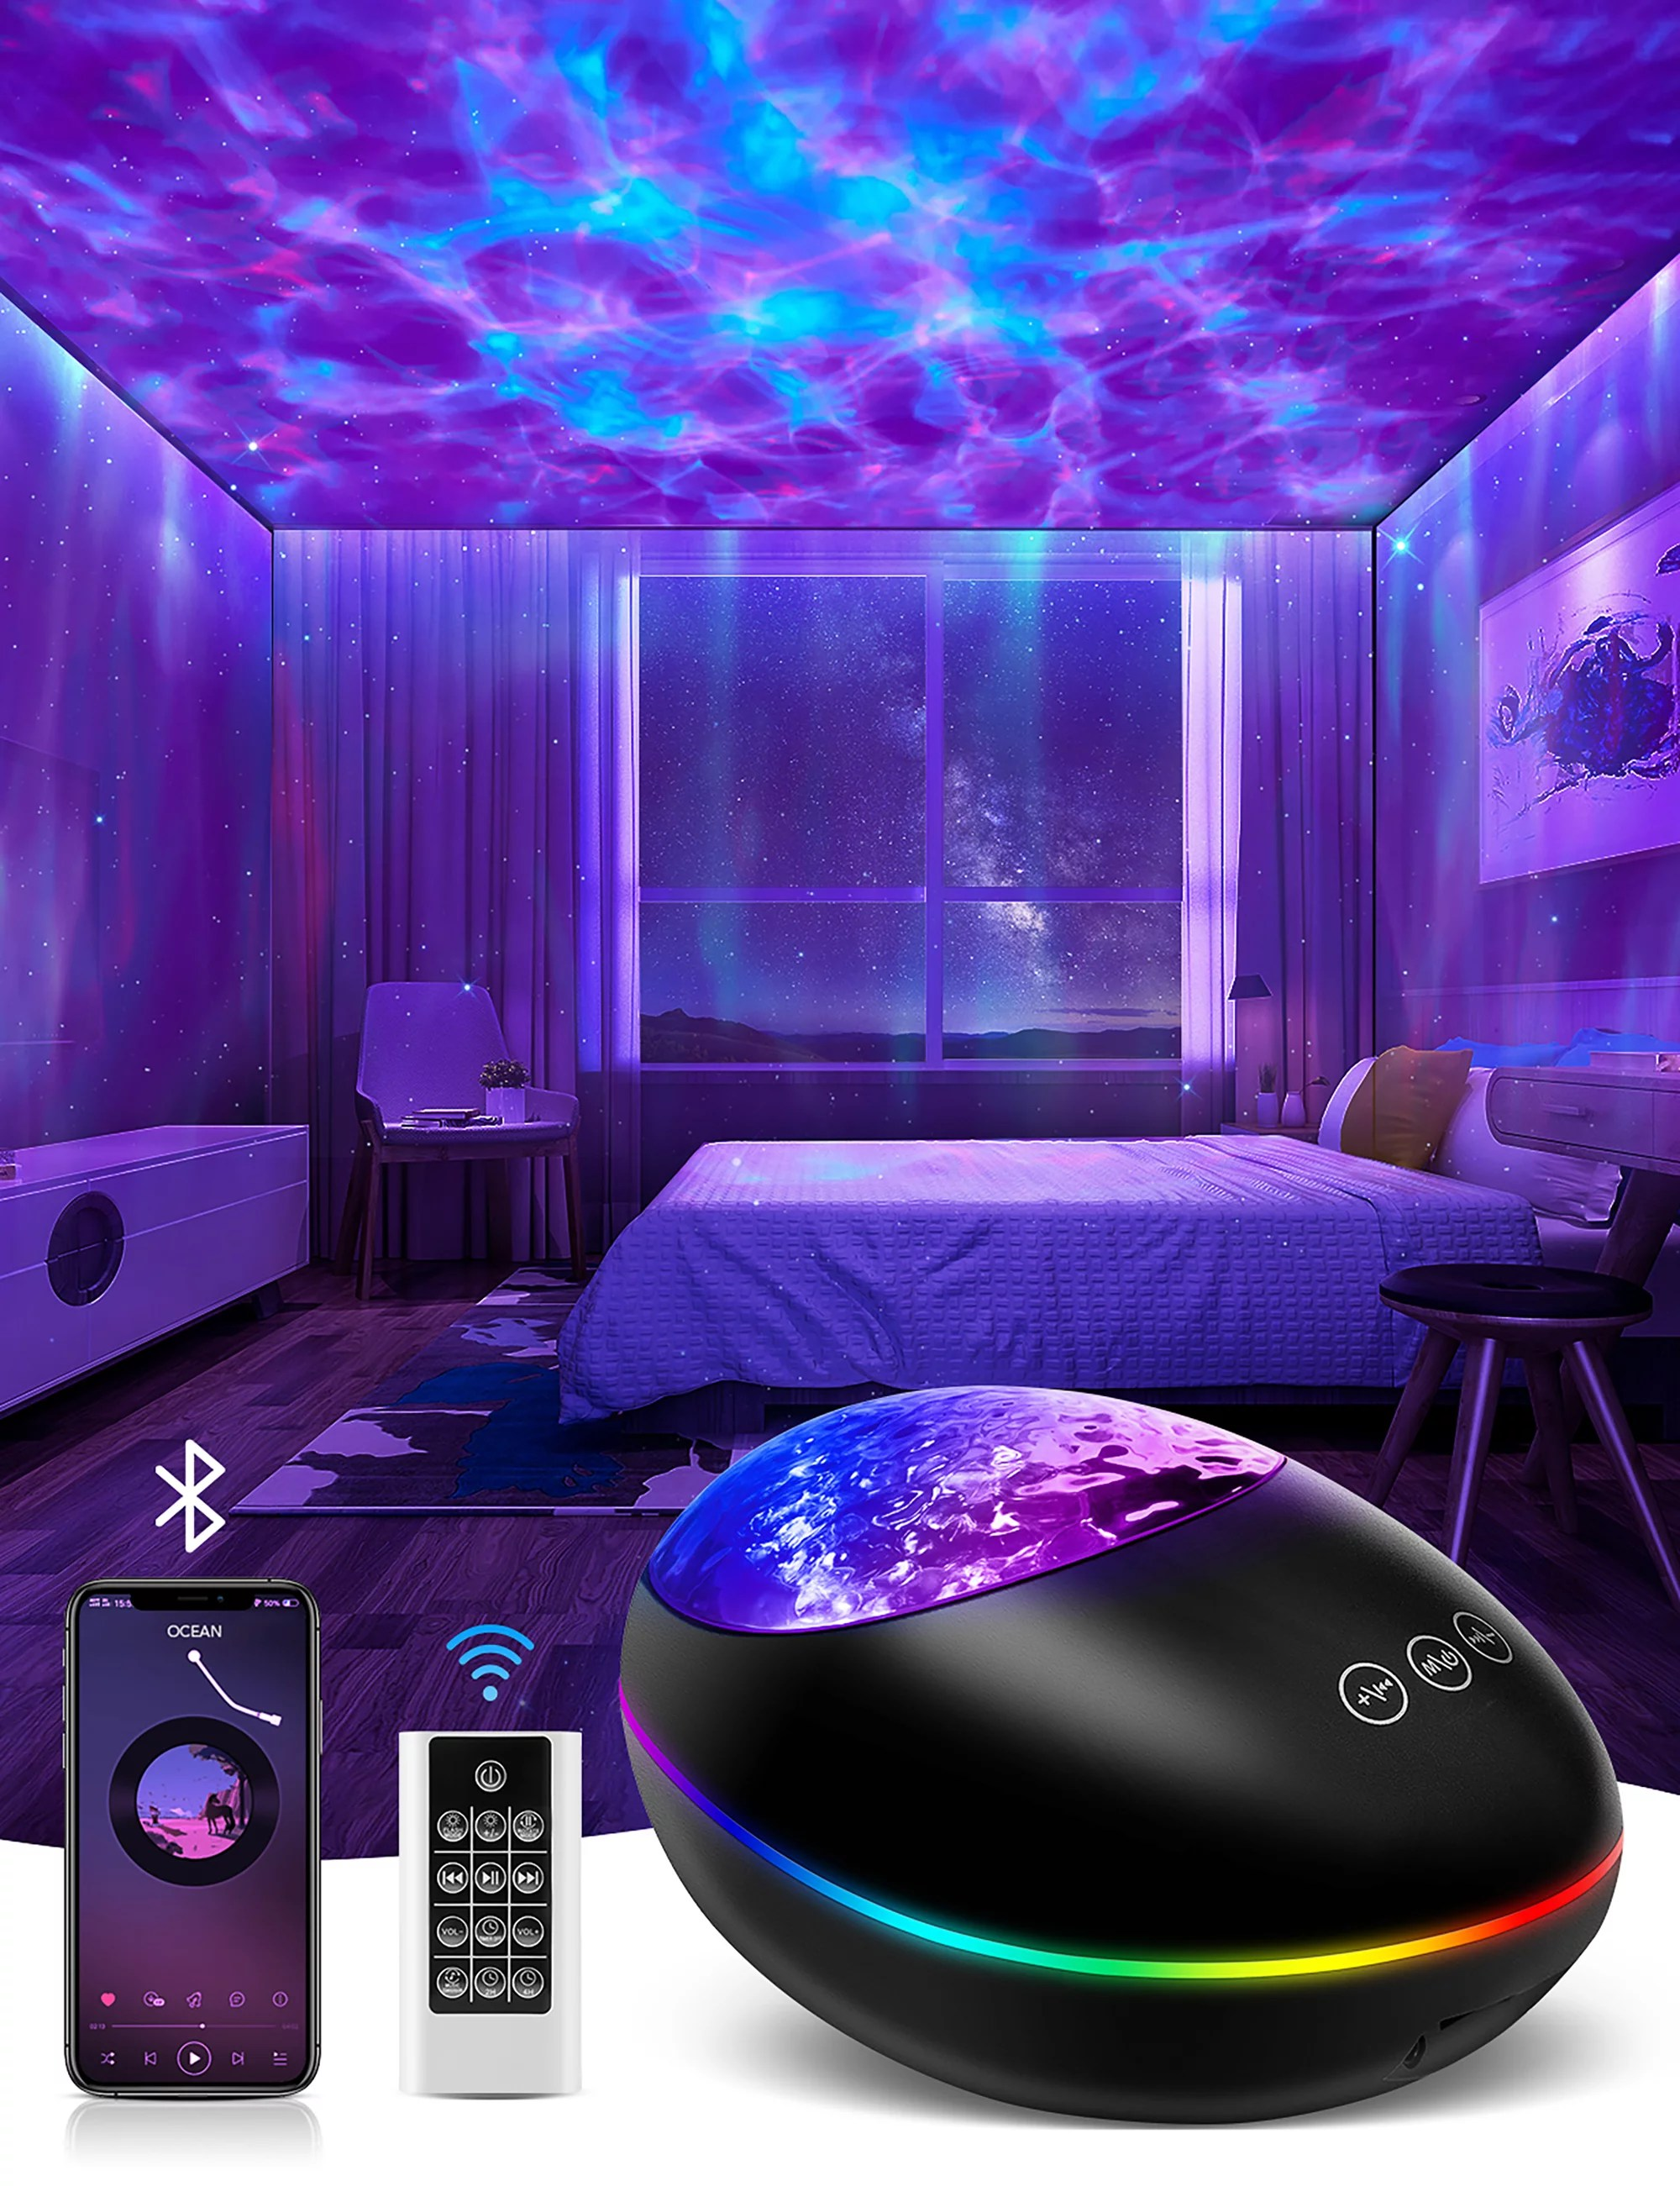 You can get the aesthetic bedroom led lights green here. Aesthetic Bedrooms Led Lights